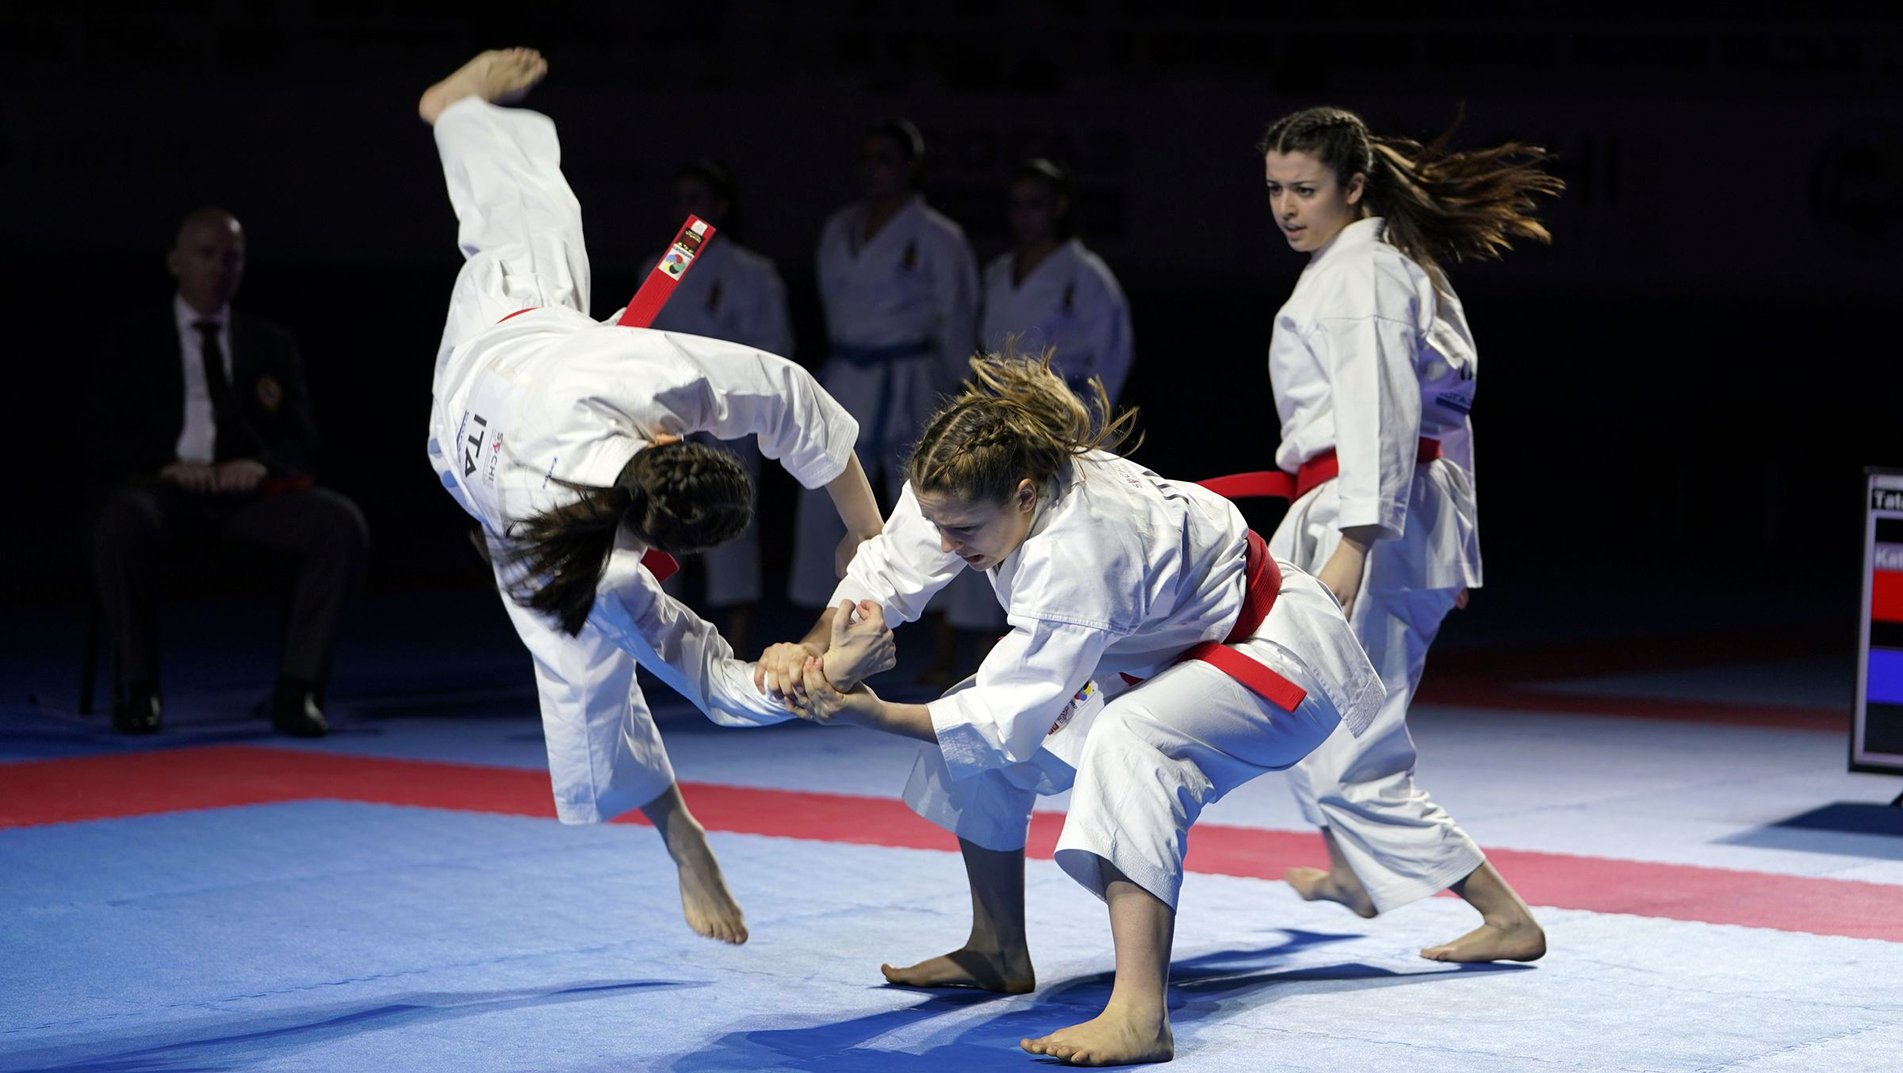 Future of European Karate to meet in Budapest